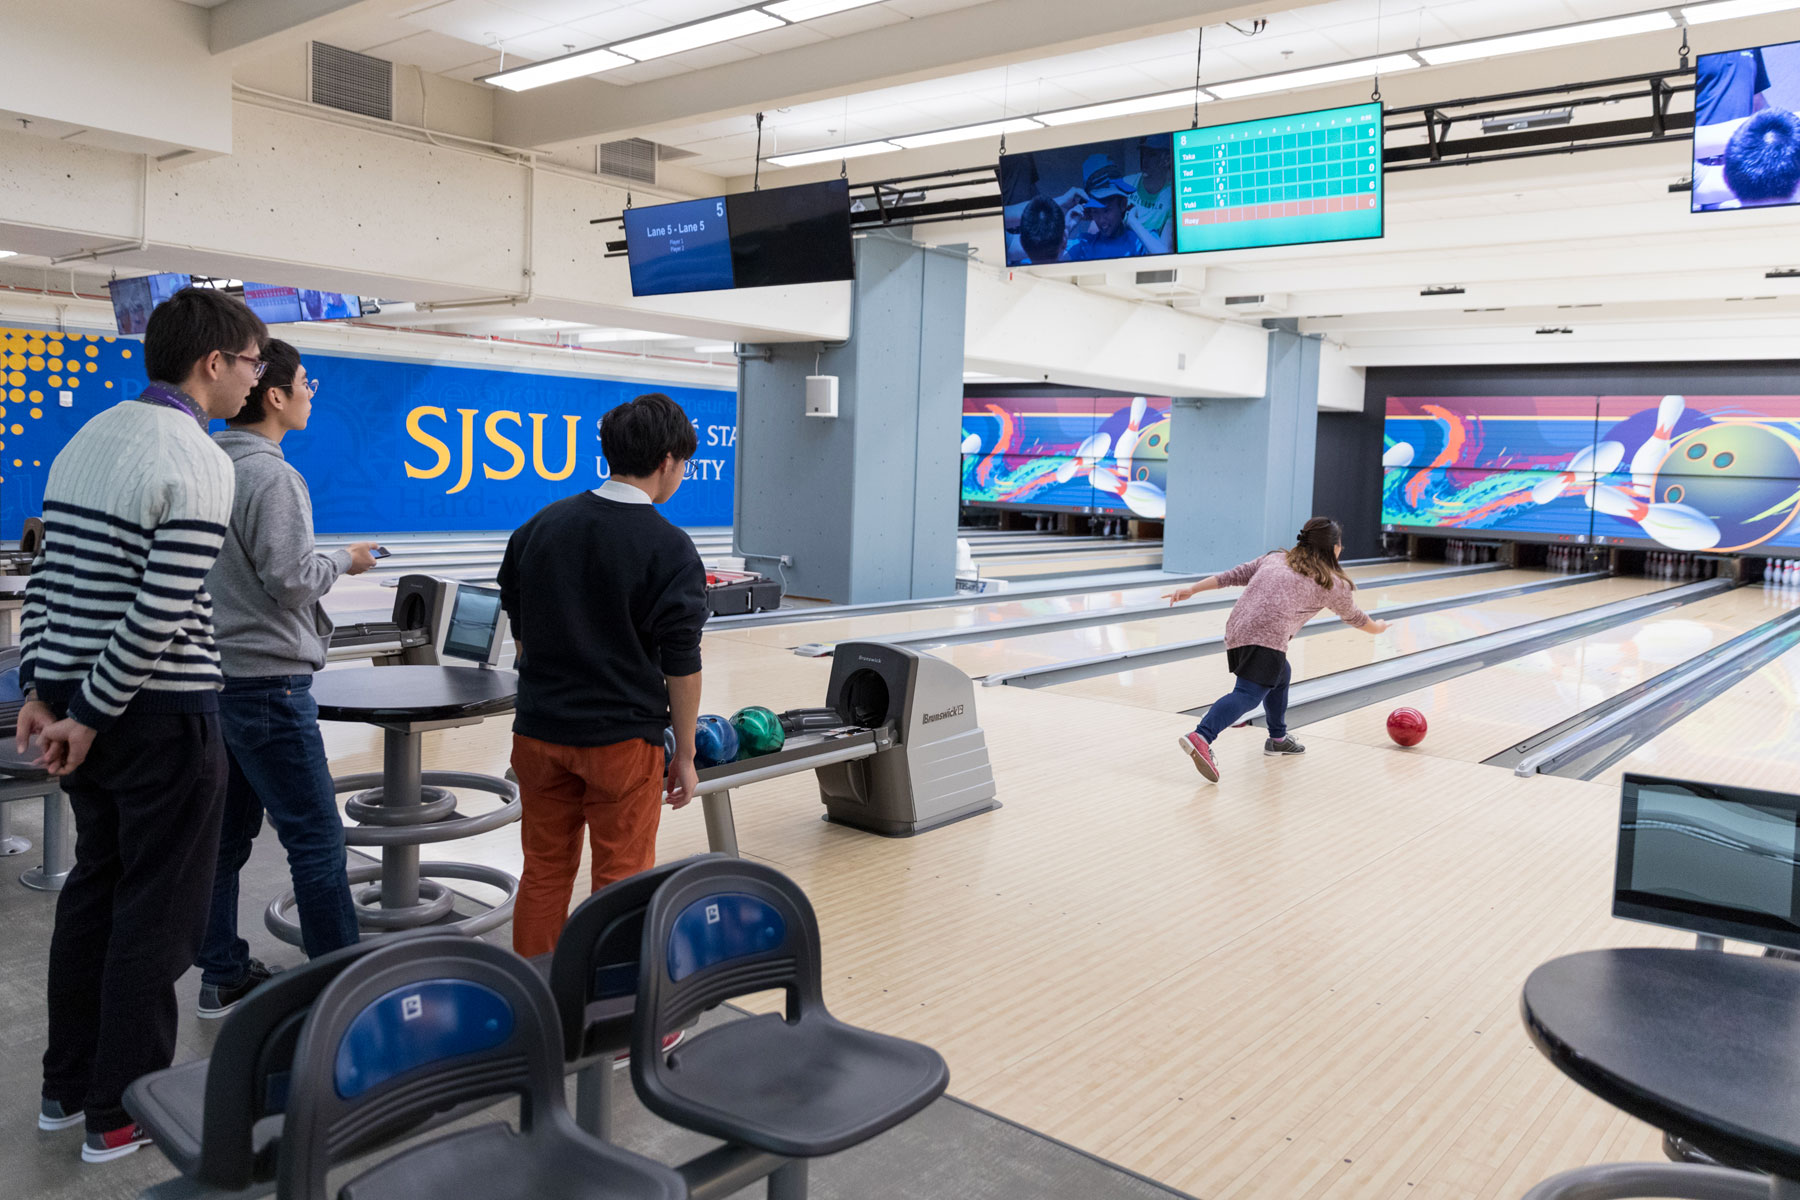 Students bowling at the Bowling Center in the Student Union.